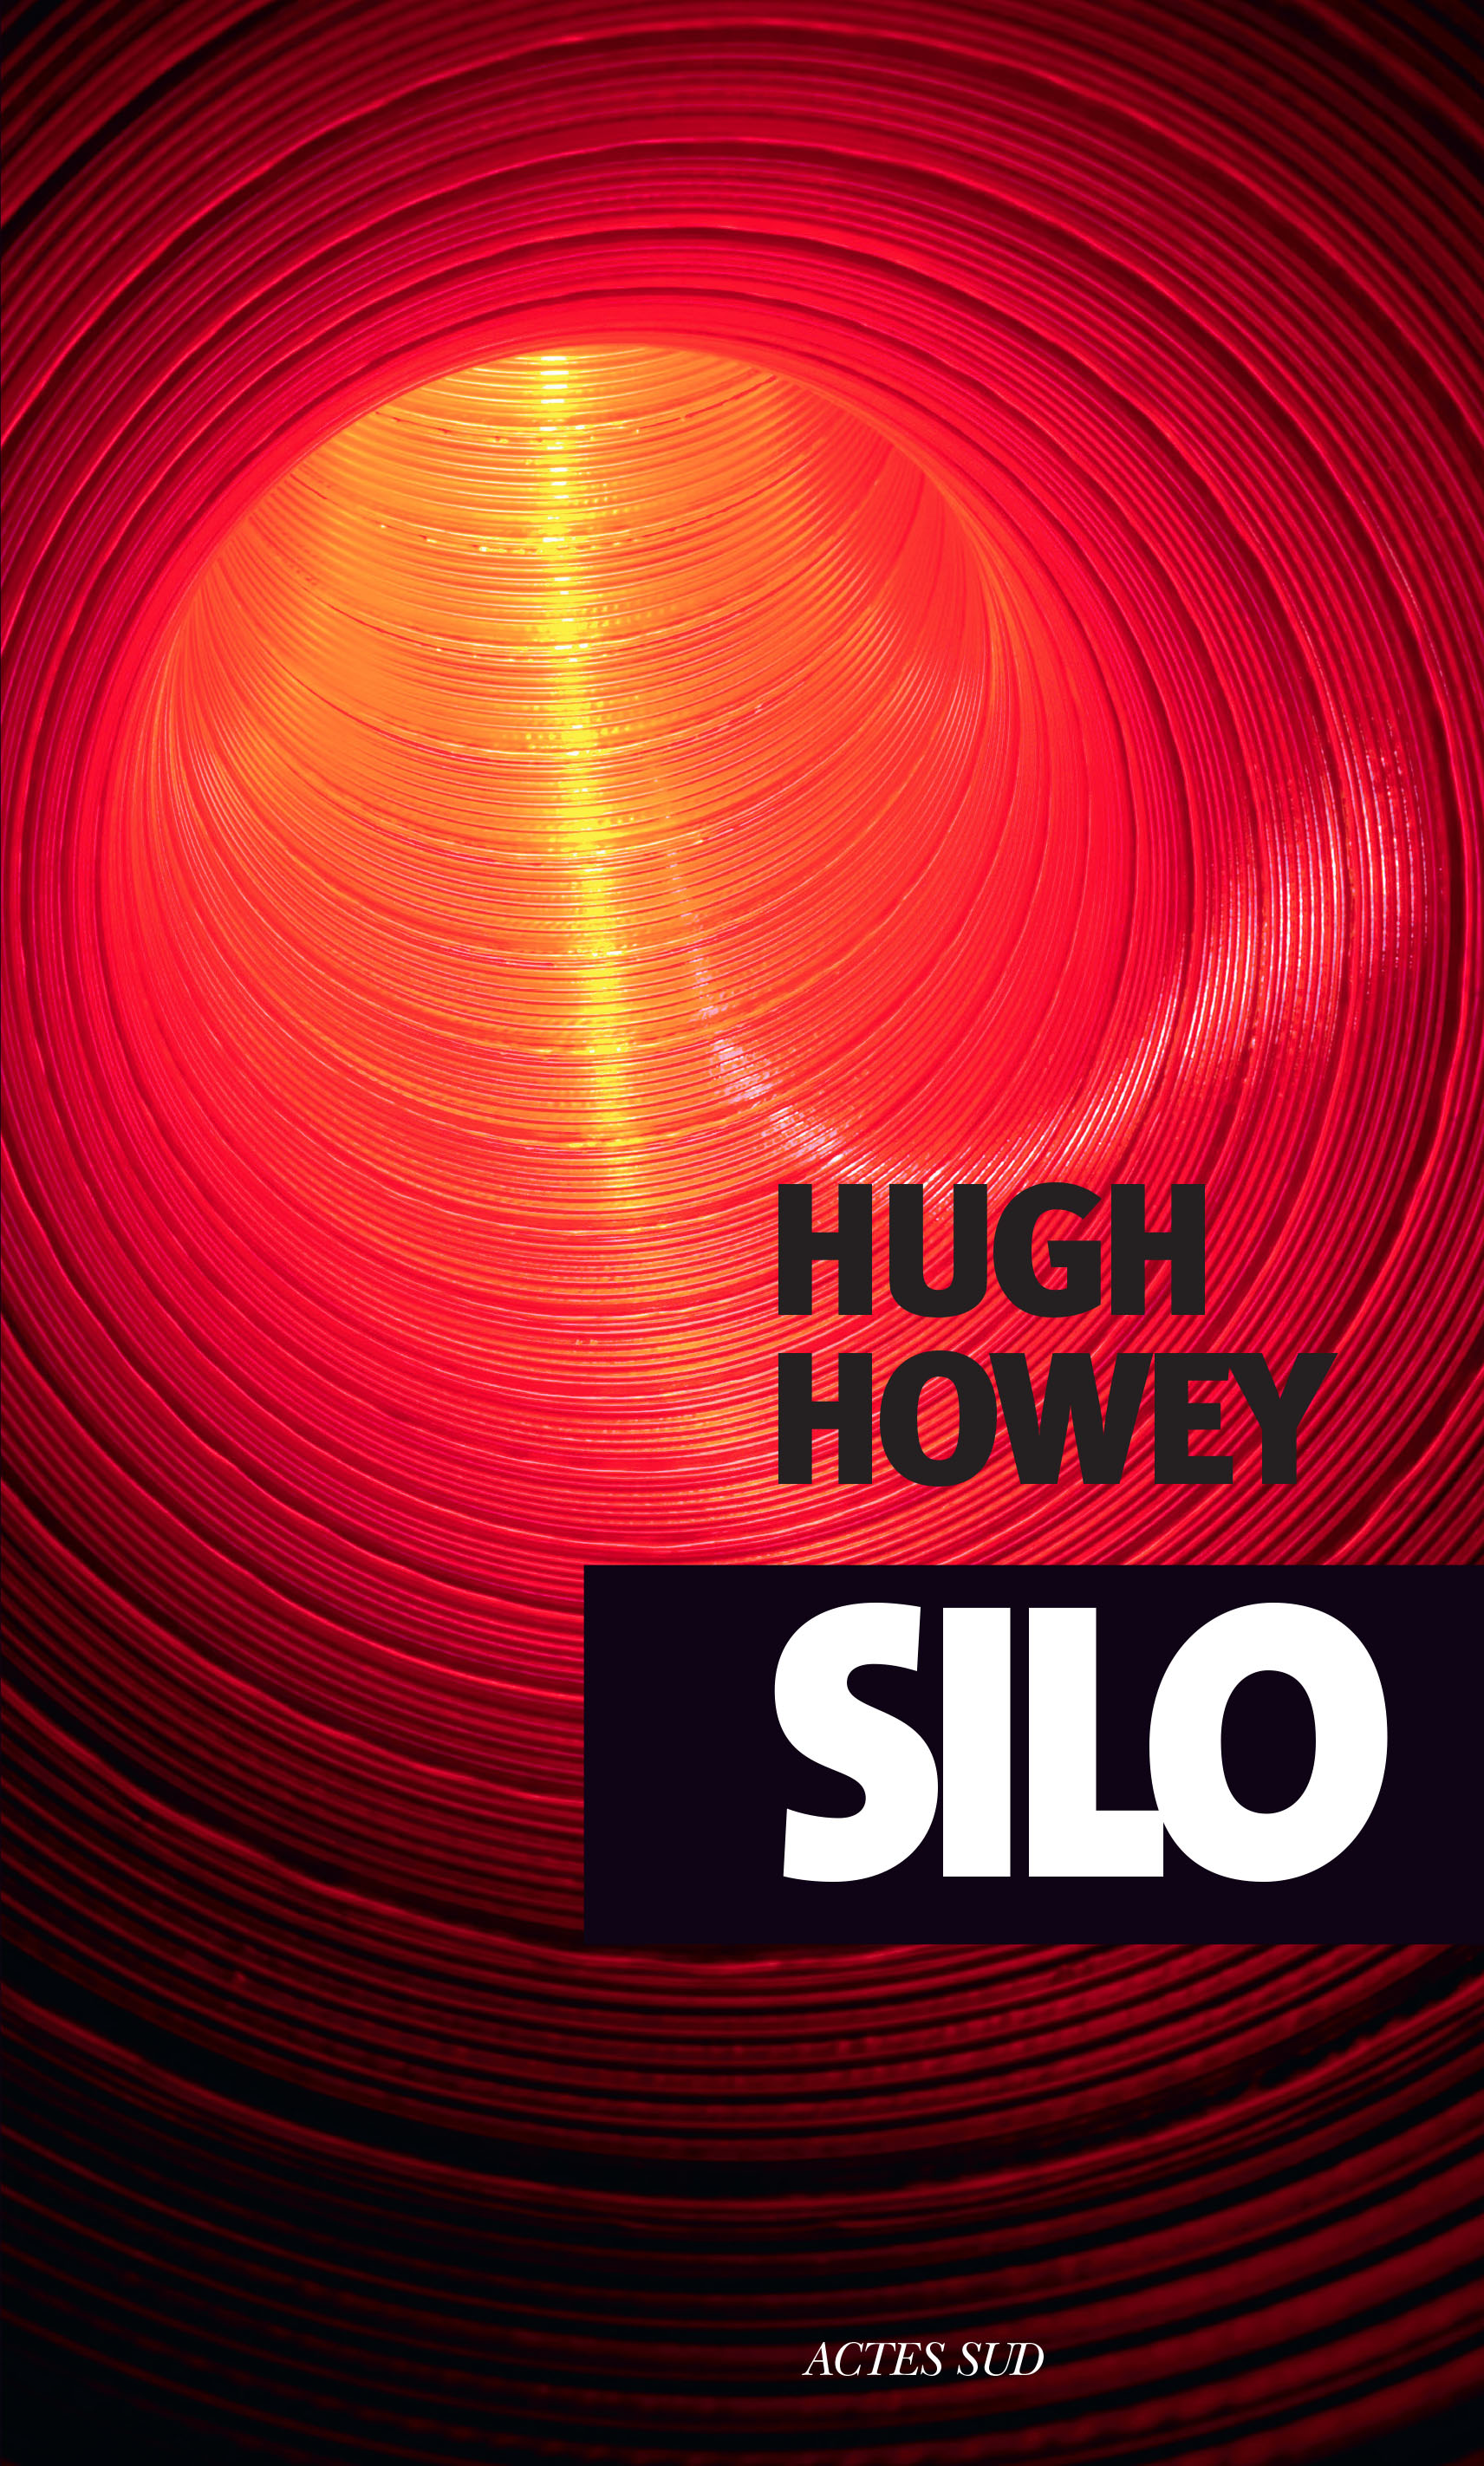 [Critique Roman] Silo de Hugh Howey